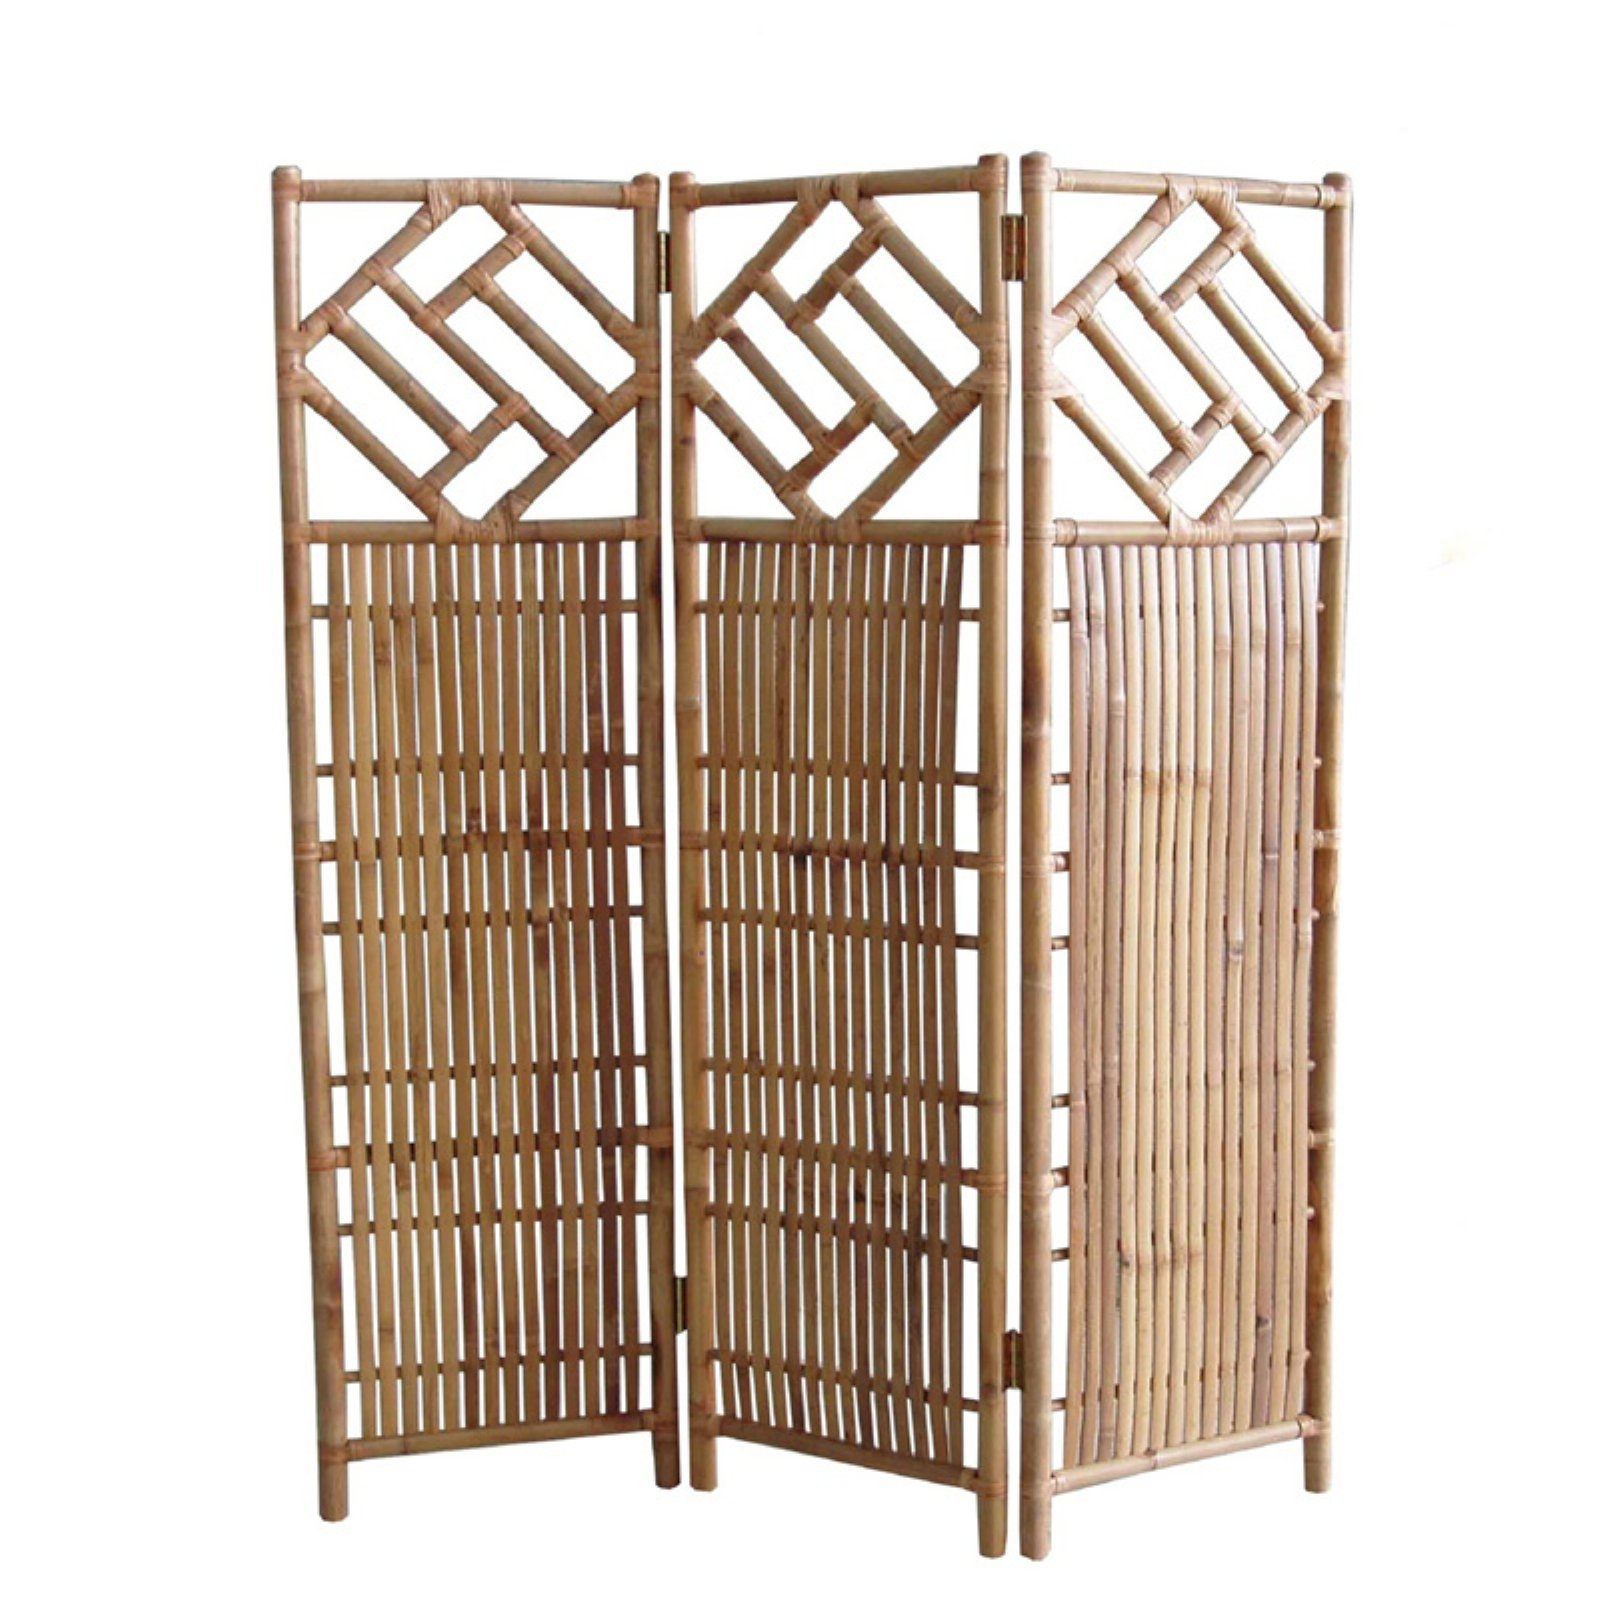 Phat Tommy 3 Panel Indoor/Outdoor Decorative Bamboo Room Divider